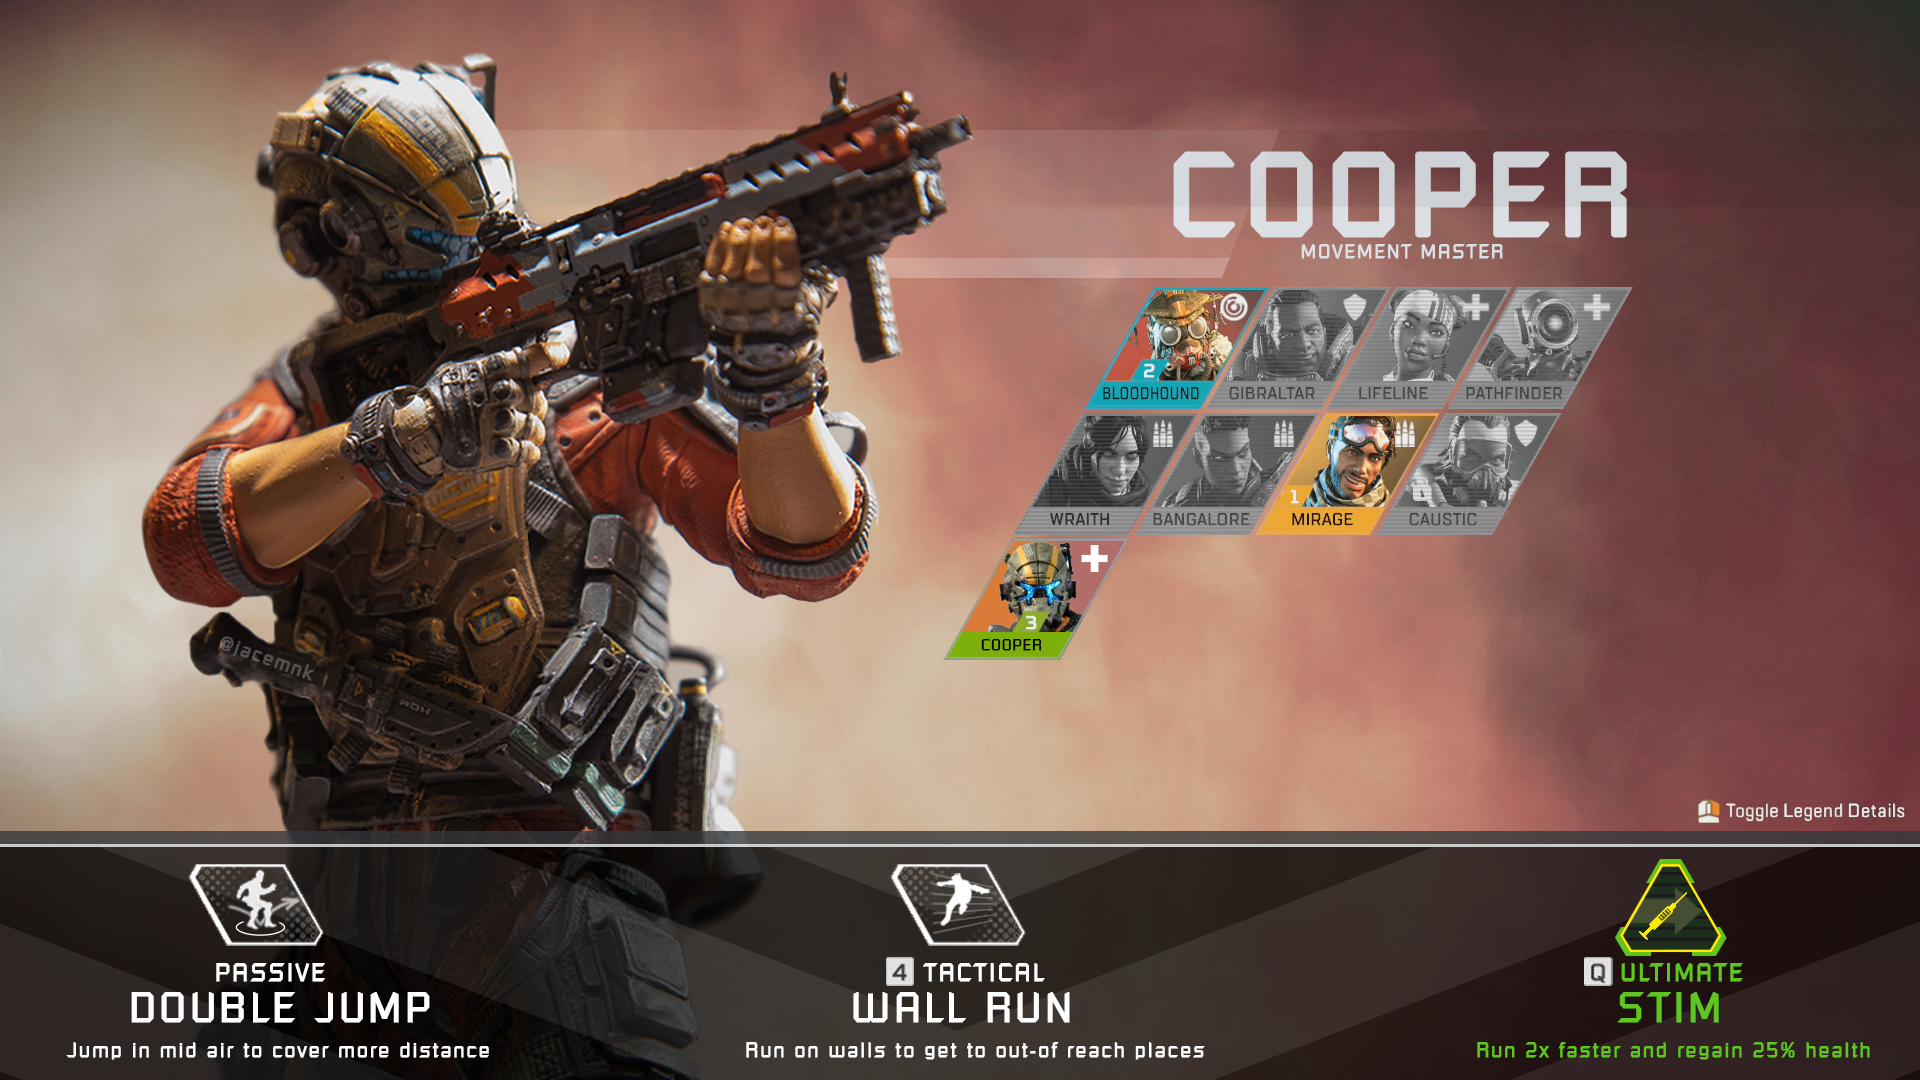 apex legends nieuwe hero cooper